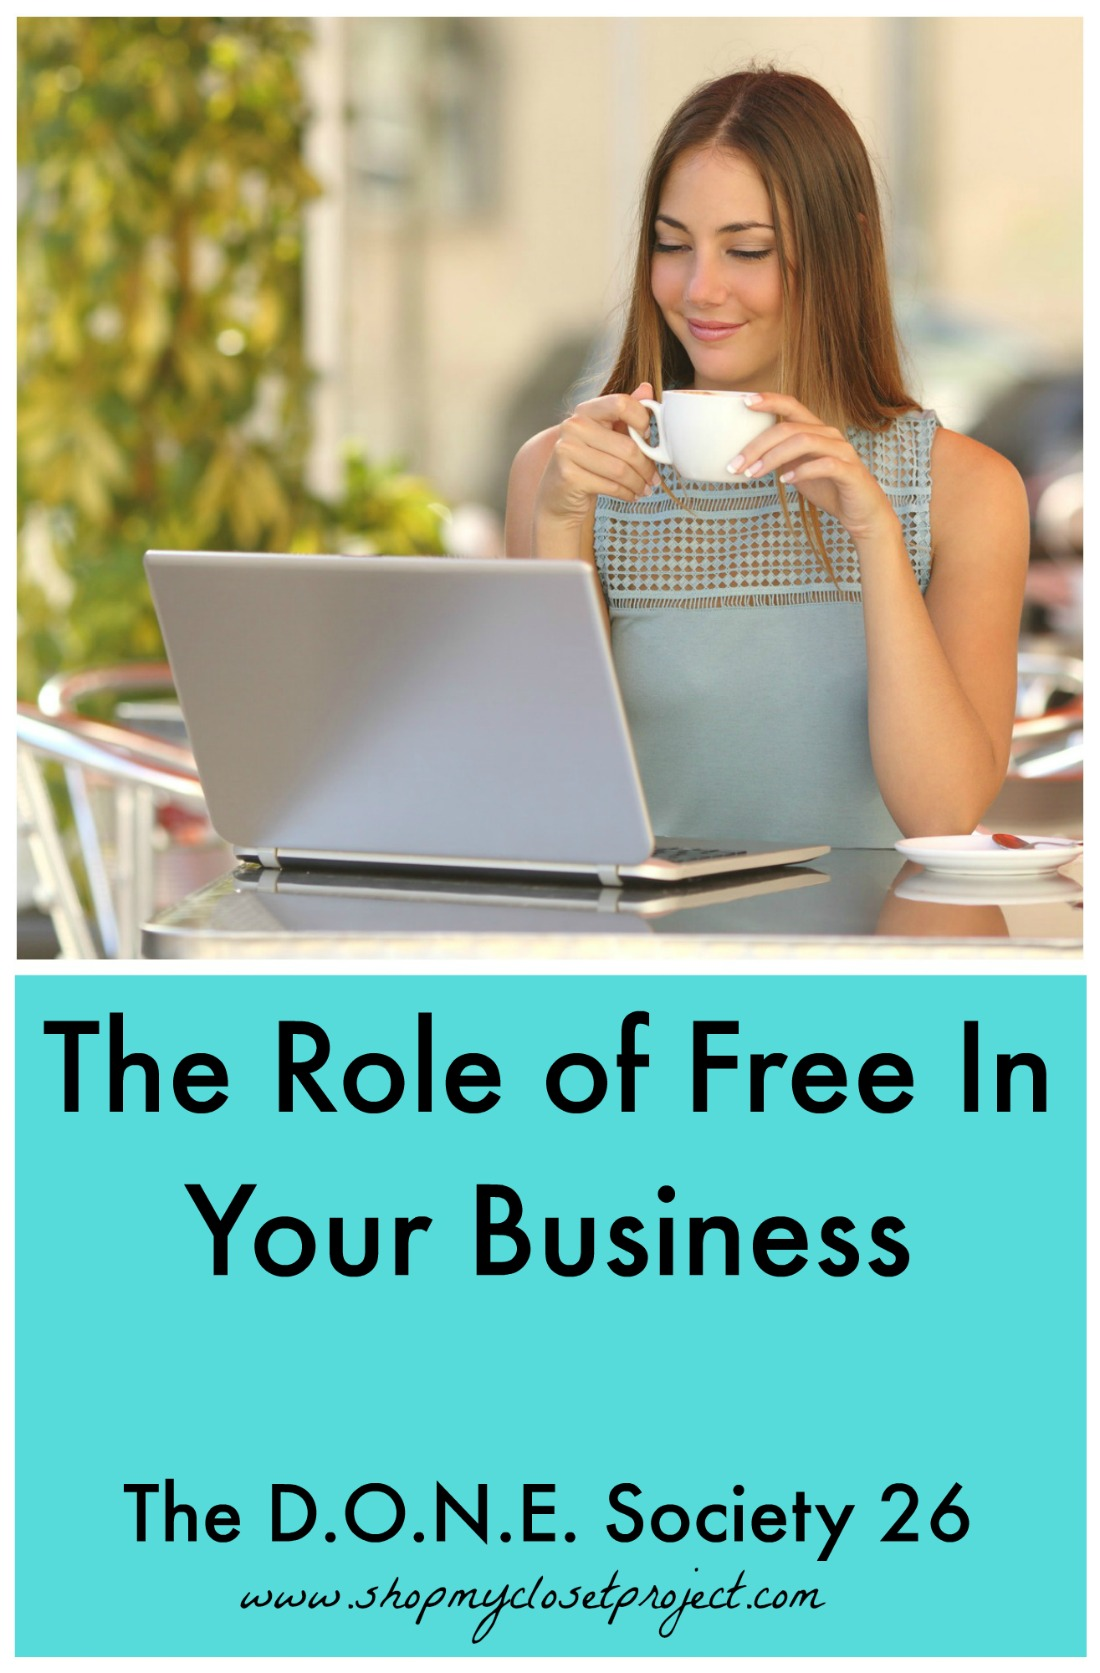 The Role of Free in Your Business-The D.O.N.E. Society